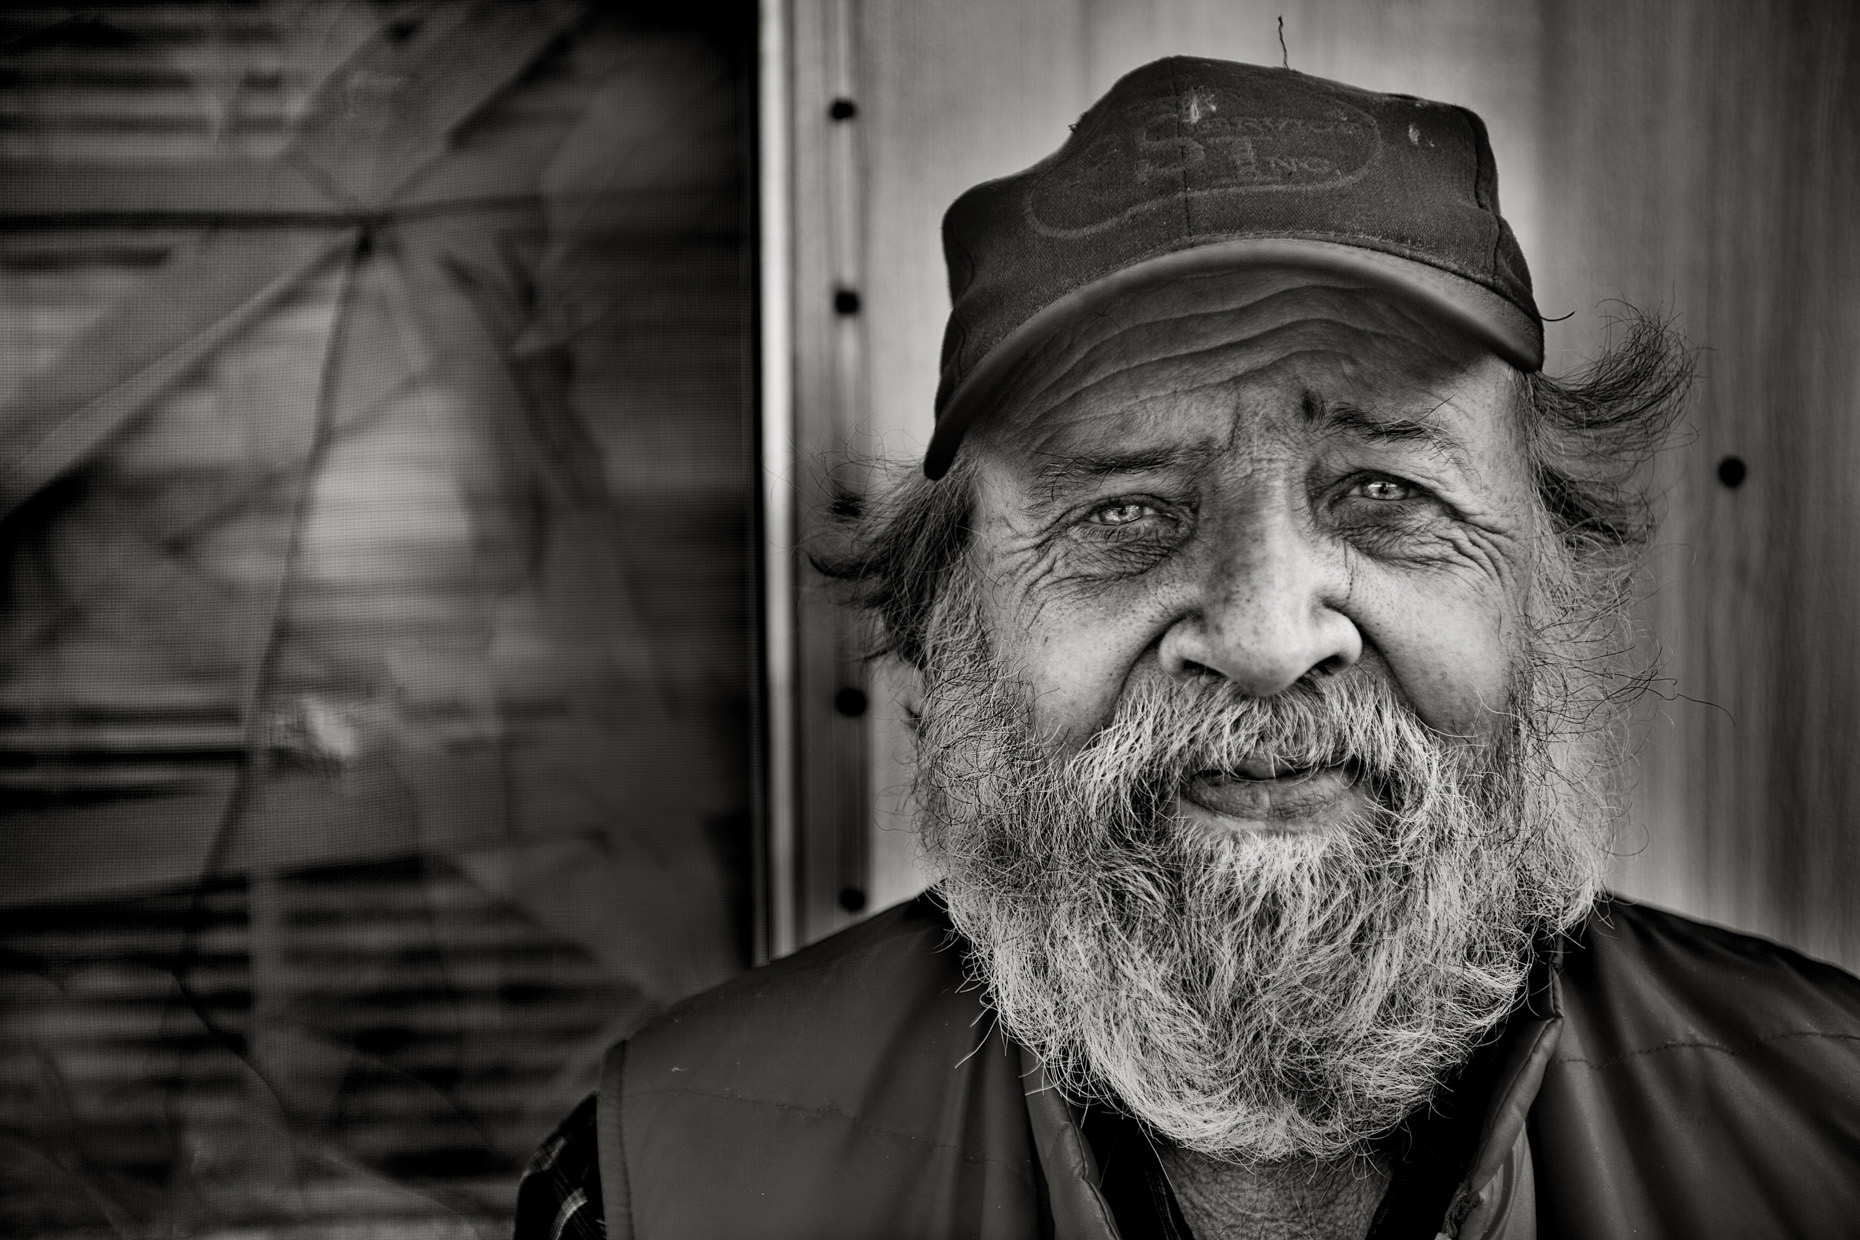 Tide Loads of Hope by Boston based commercial portrait photographer Brian Nevins